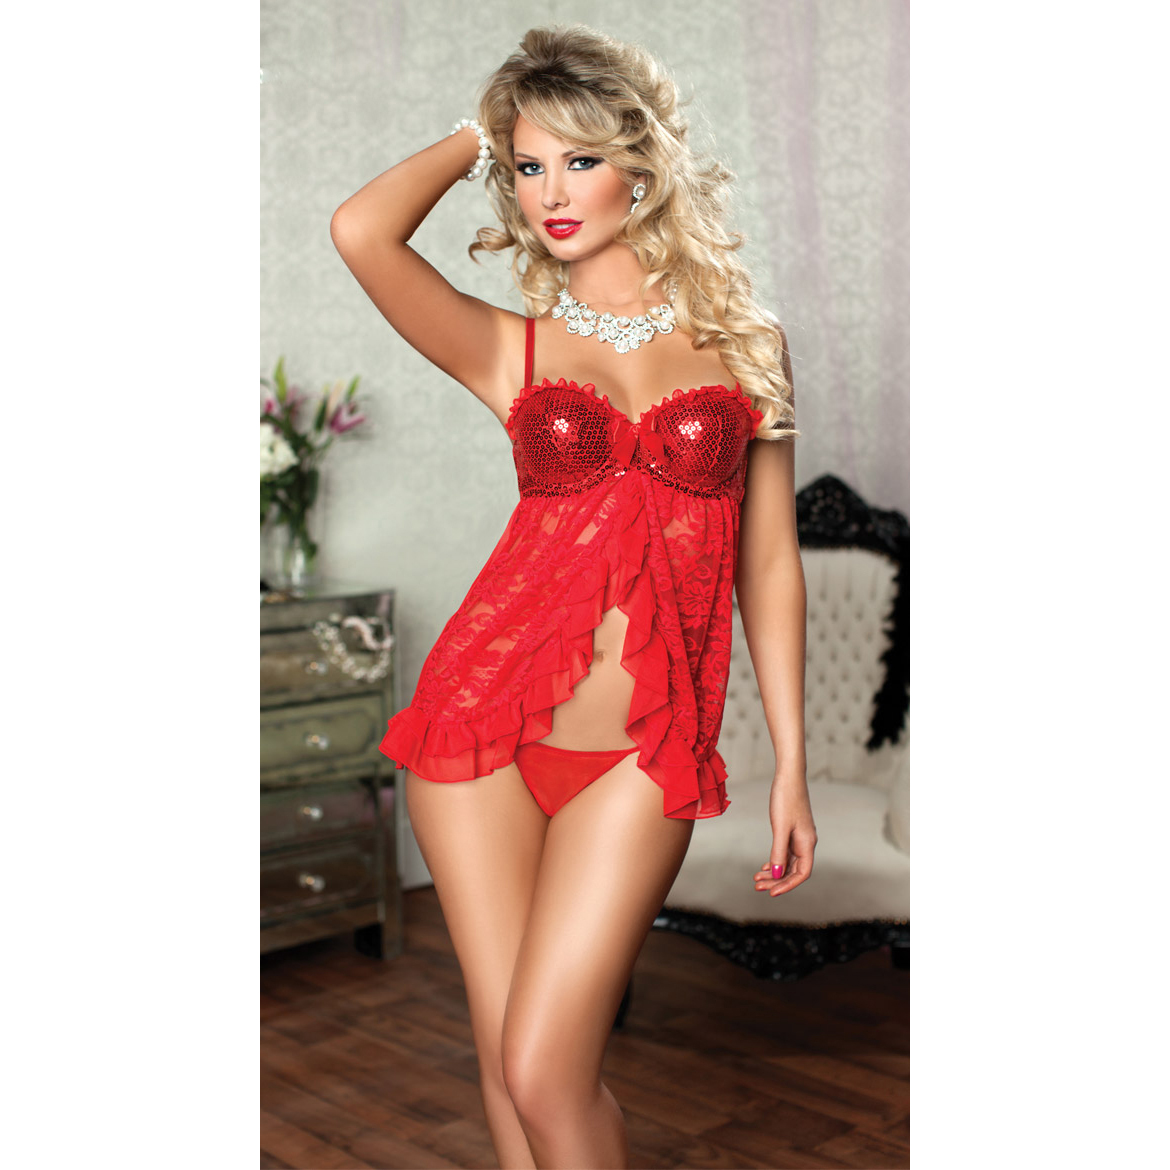 Find The Top Christmas Toys for Right Here. Home; Best Cup Sleepwear Lace. Buy Cup Sleepwear Lace on eBay now! Cross Dye - $ Full Figure Plus Size M-6x Lingerie Lace Caged Cup Babydoll Sleepwear Robe Dress. Full Figure - $ Full Figure Plus Size M-6x Lingerie Lace Caged Cup Babydoll Sleepwear Robe Dress. Forest Jungle - $